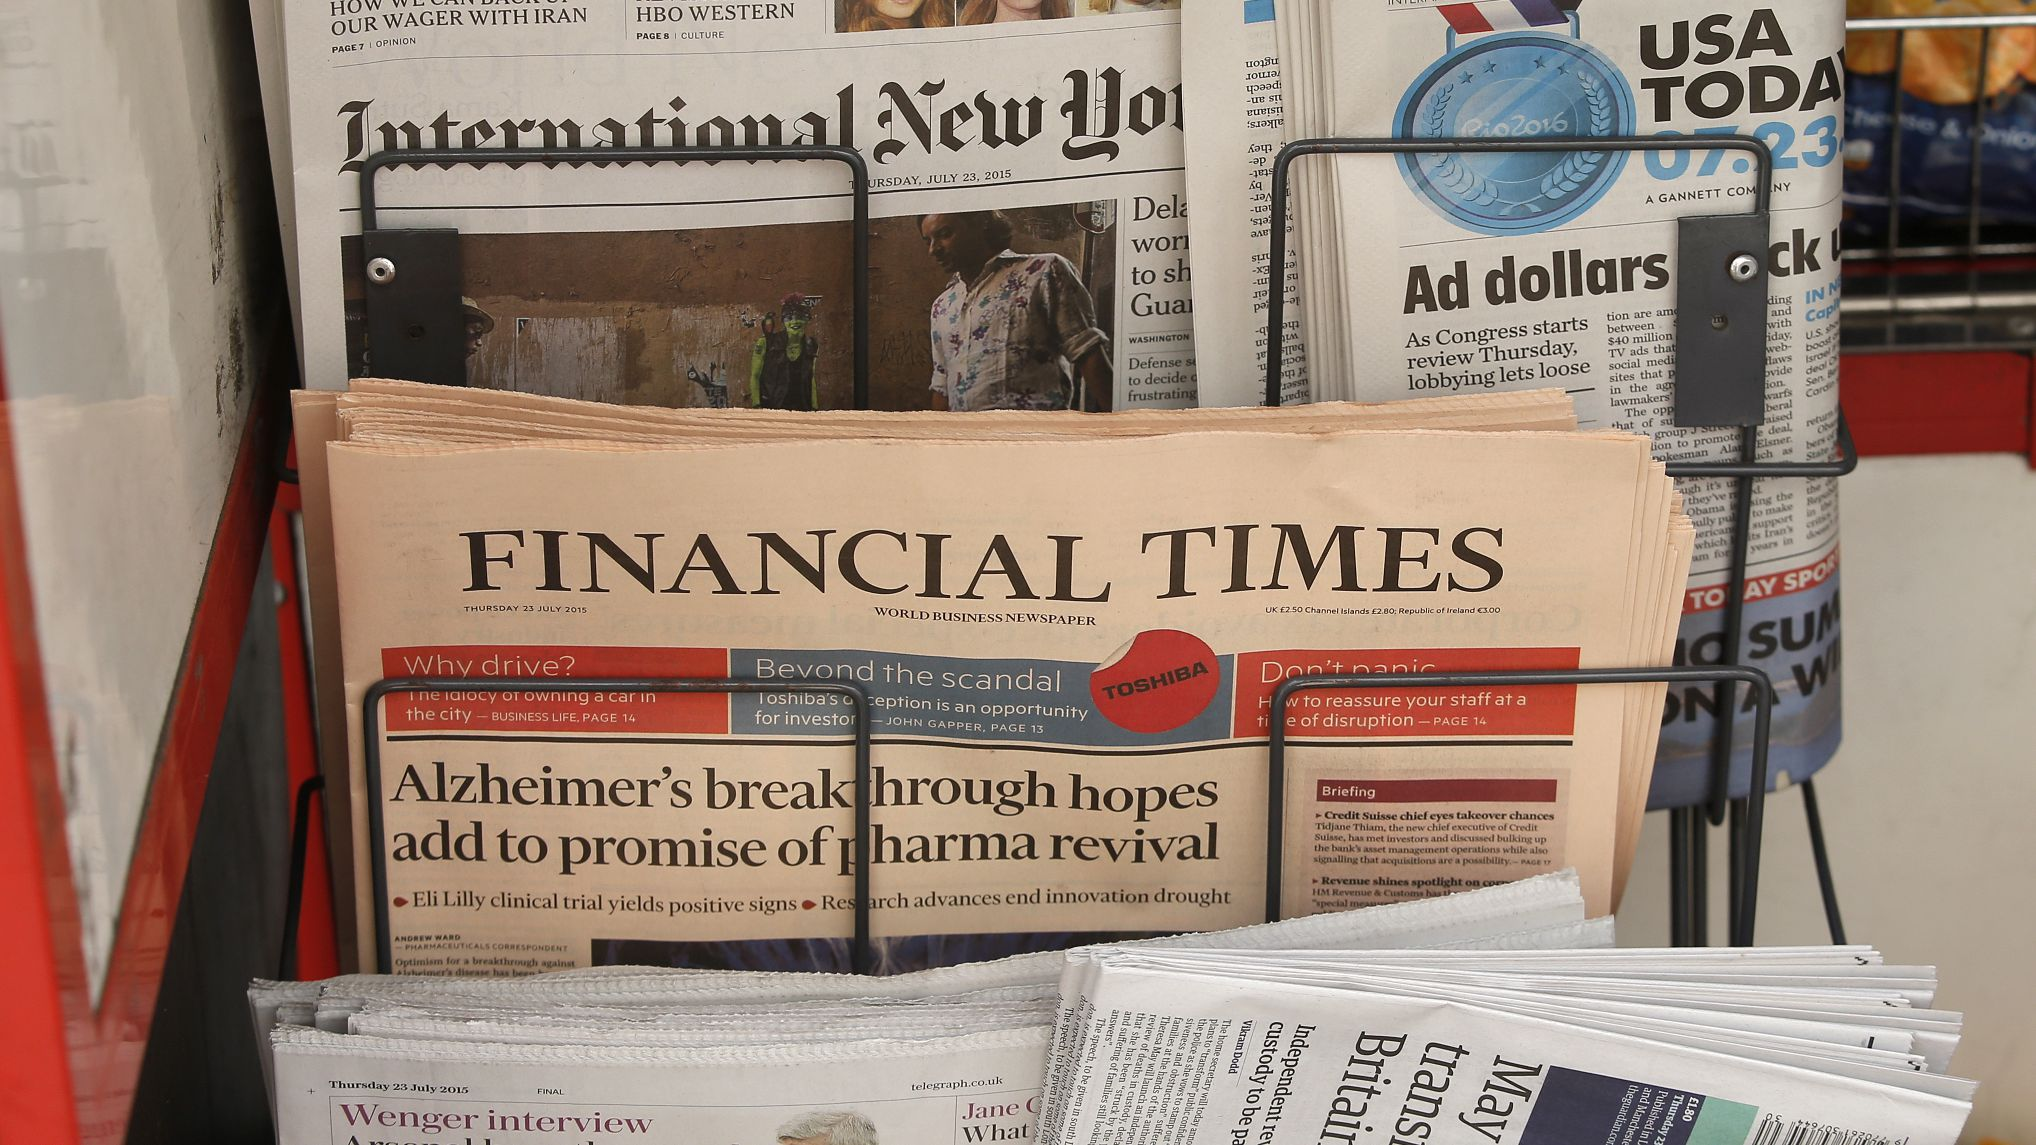 "Copies of the Financial Times newspaper sit in a rack at a newsstand in London, Britain July 23, 2015. British publisher Pearson has decided to sell the Financial Times to a ""global, digital news company"" after owning the business newspaper for nearly 60 years, a person familiar with the deal said on Thursday. Pearson, which has become the world's leading education provider, later confirmed that it was in advanced discussions regarding a potential disposal of FT group, which includes the pink-paged paper, its website and its share in the Economist, but declined to provide further details. REUTERS/Peter Nicholls"